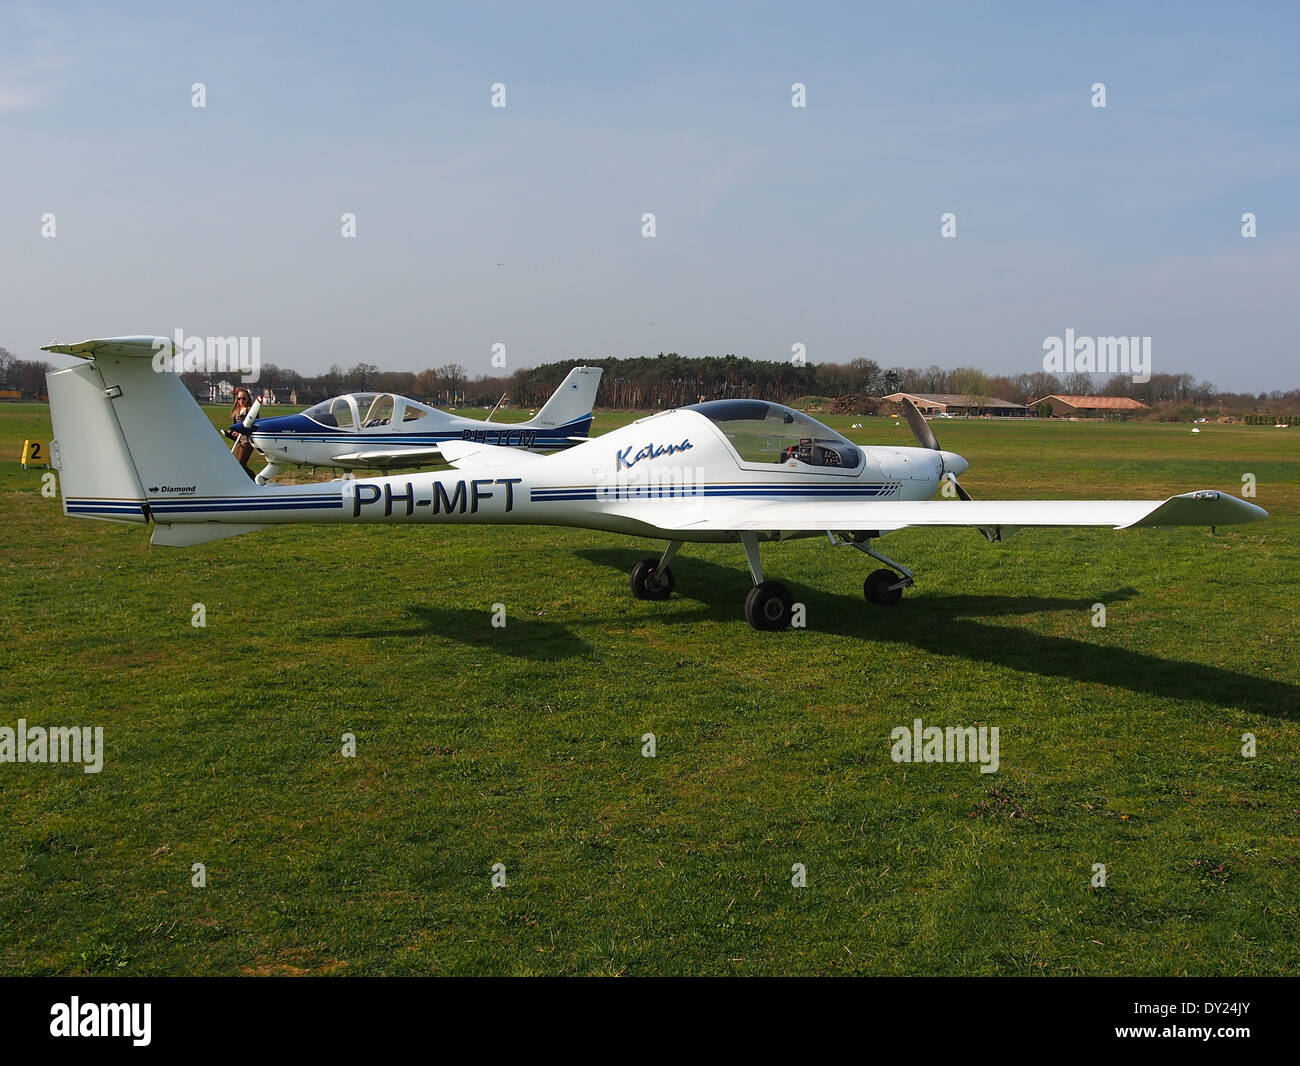 PH-MFT, HOAC DV-20-100 Katana at Hilversum Airport (ICAO EHHV), photo1 - Stock Image